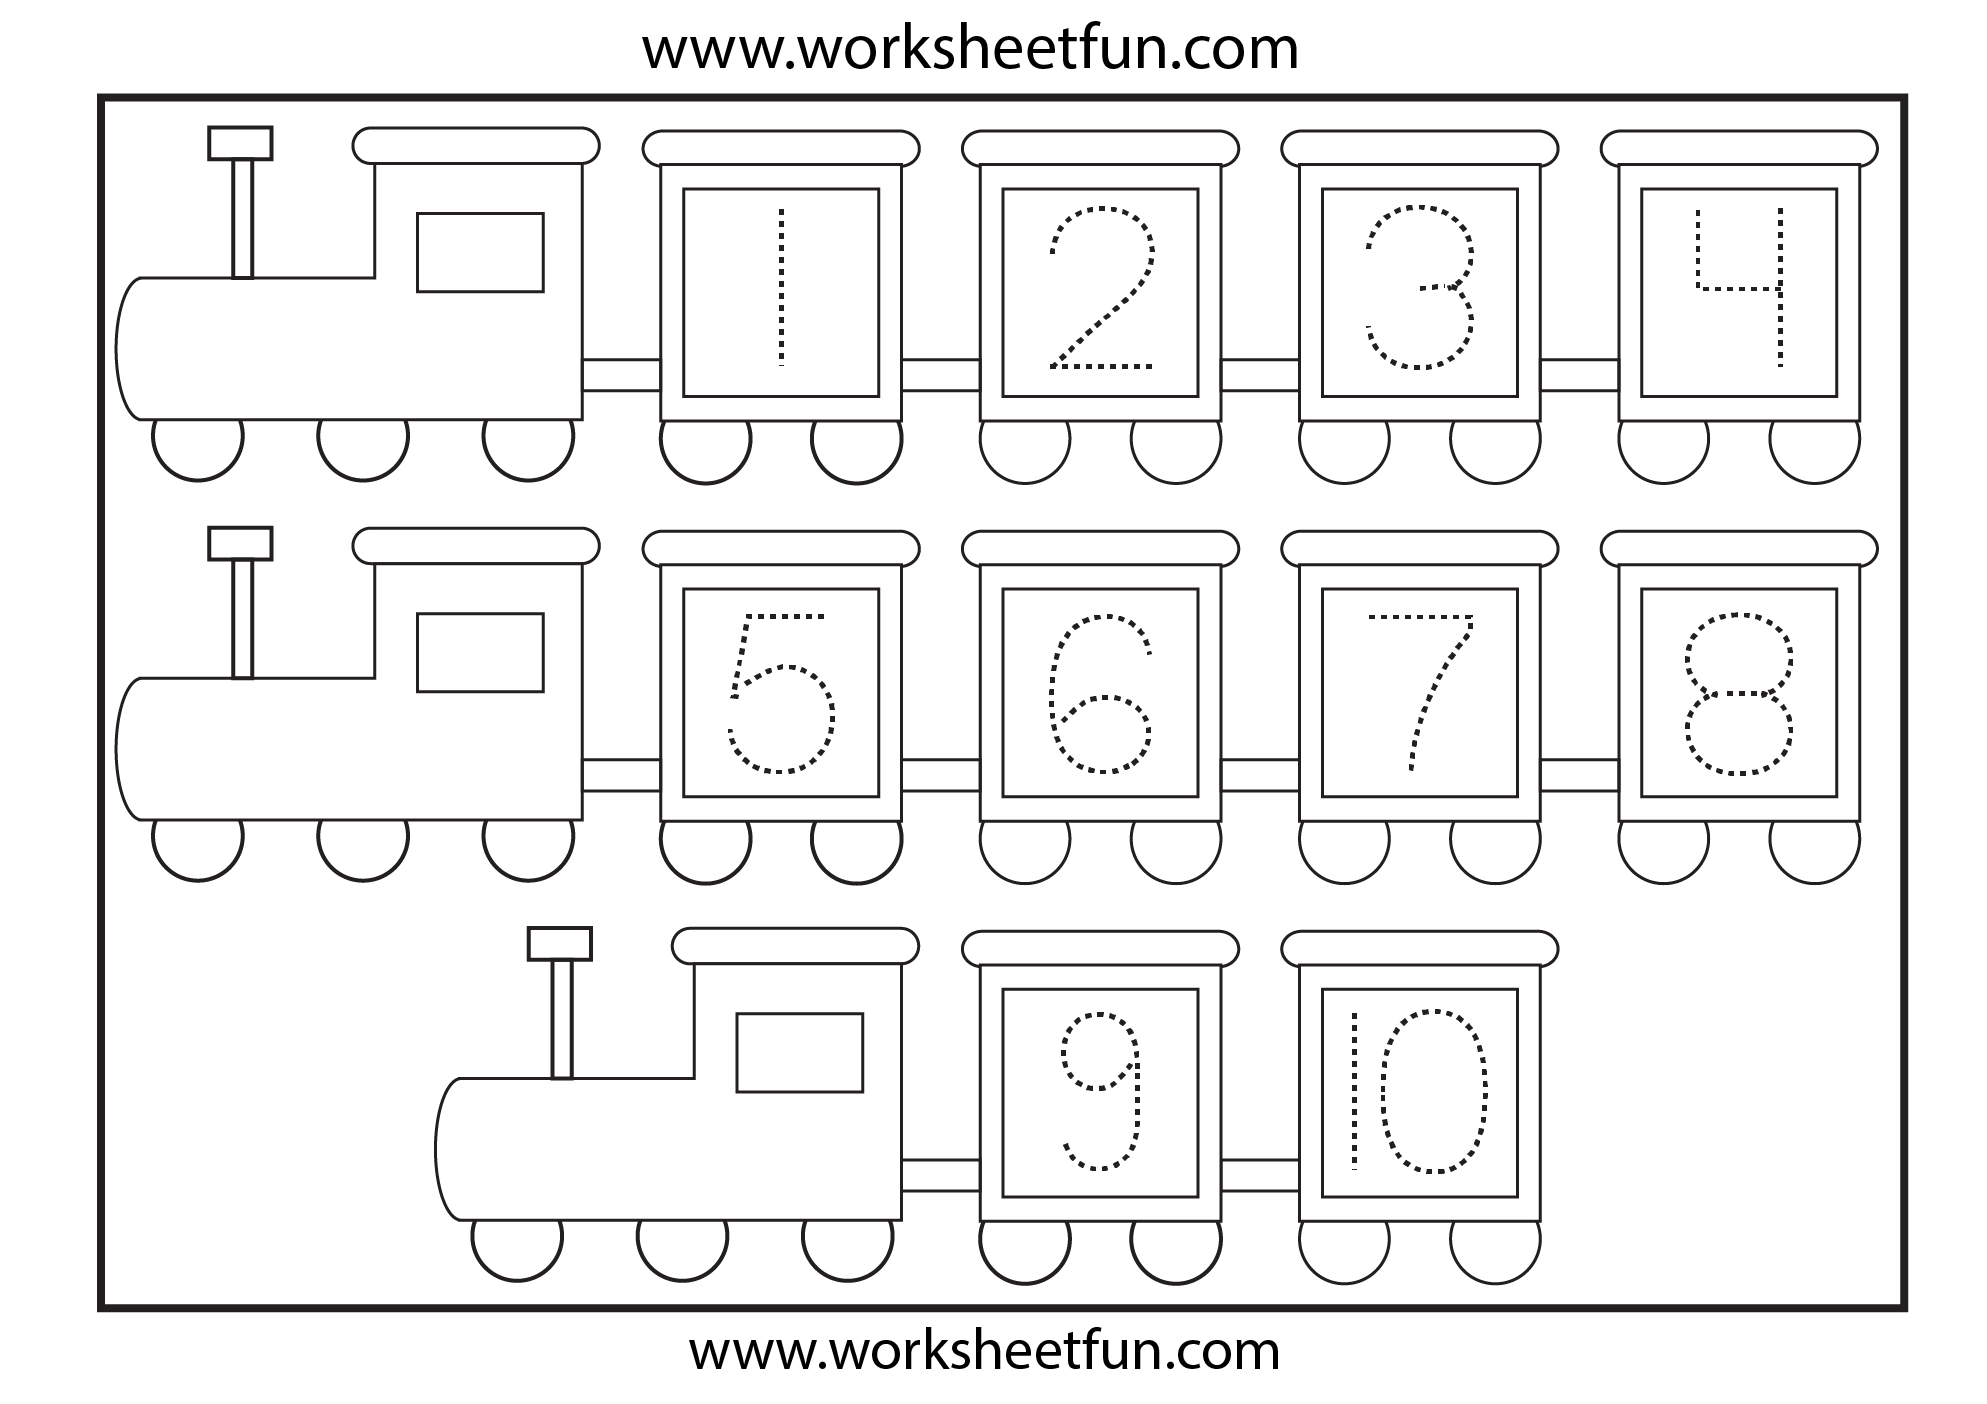 Worksheets Number Tracing Worksheets number tracing worksheets pre k numbers trace 1 20 activity shelter